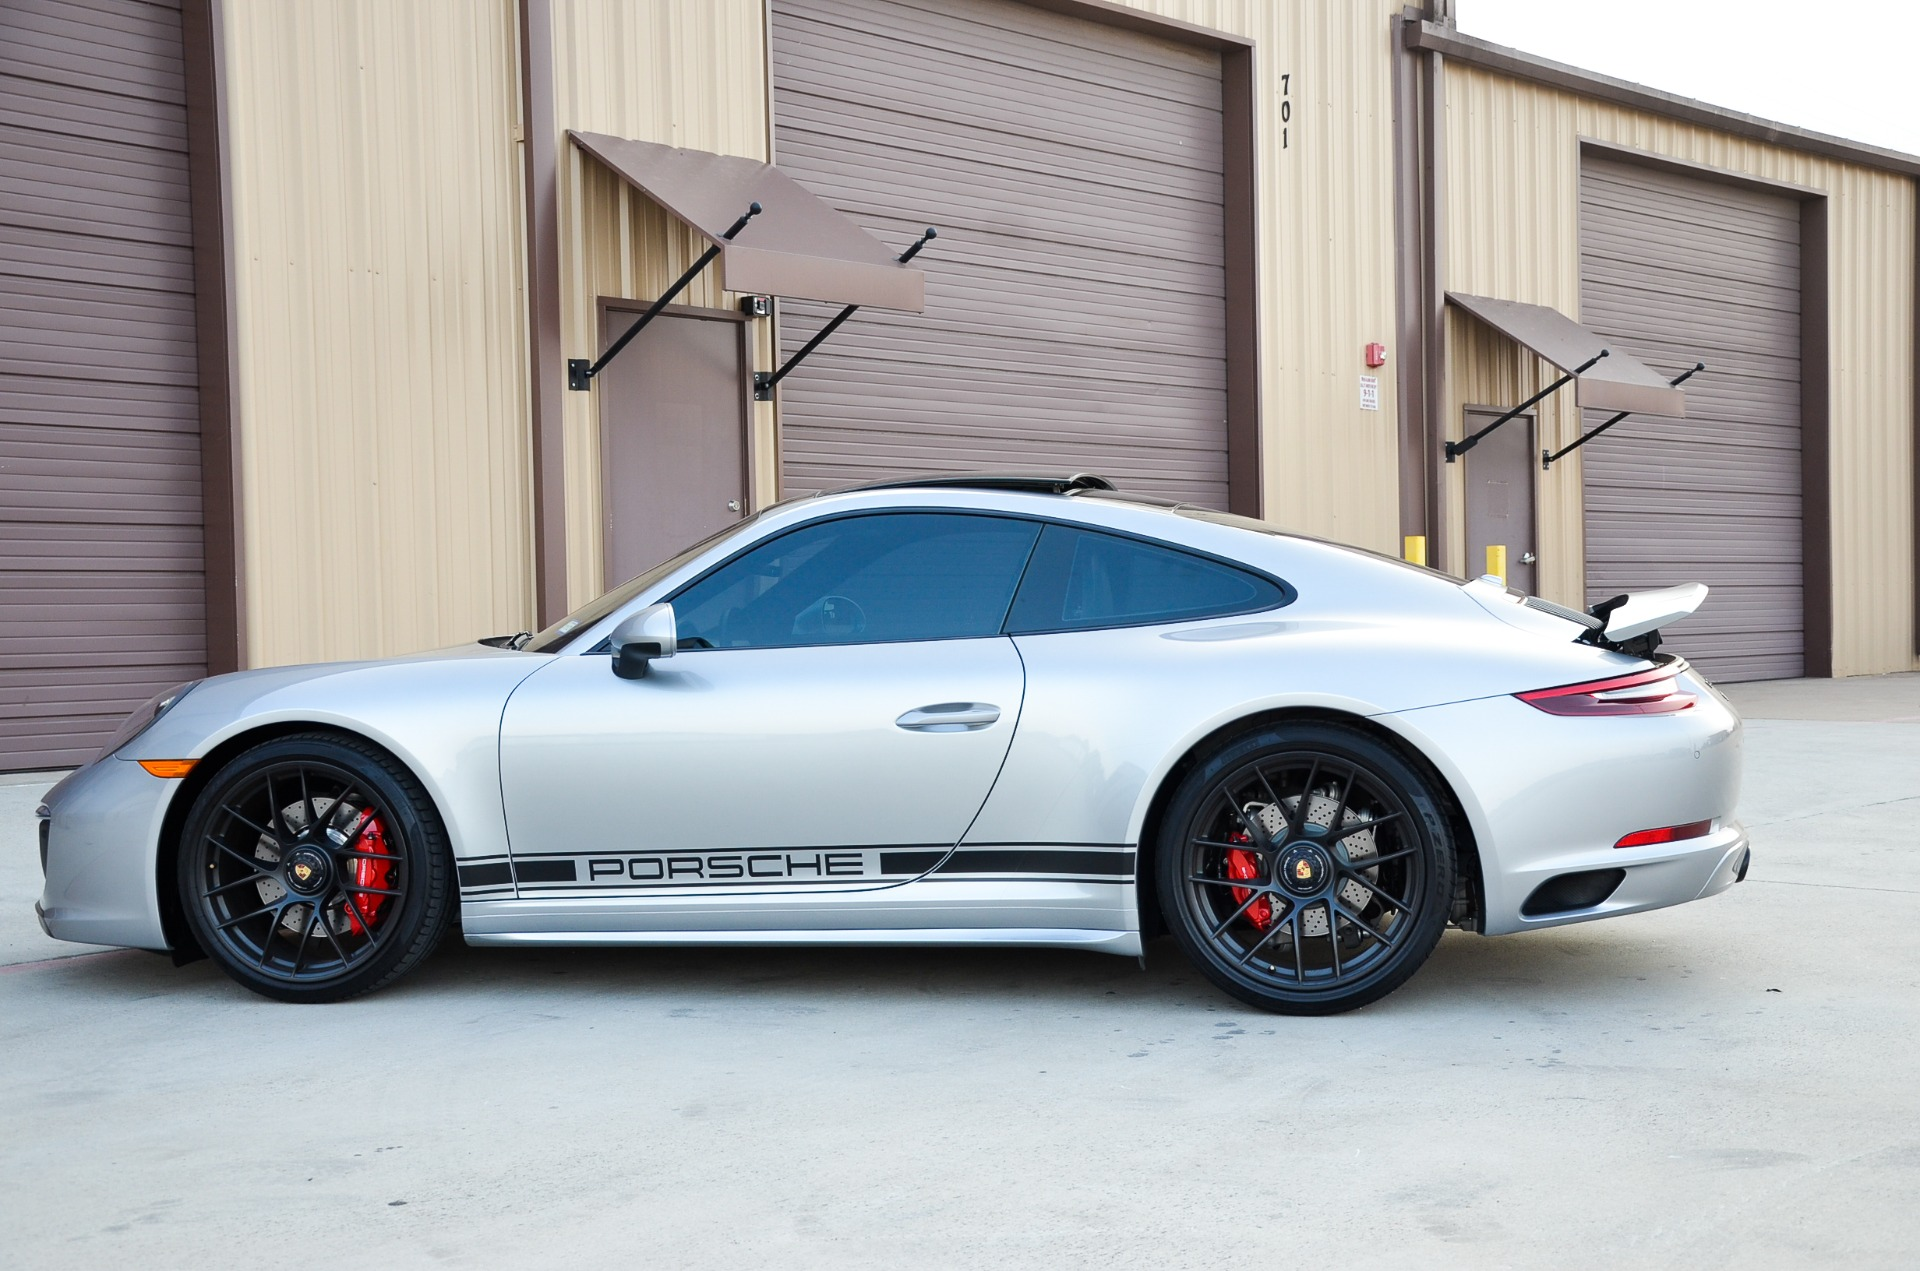 2019 Porsche 911 Carrera GTS for sale Sold Platinum Motorcars in Ft Worth TX 1